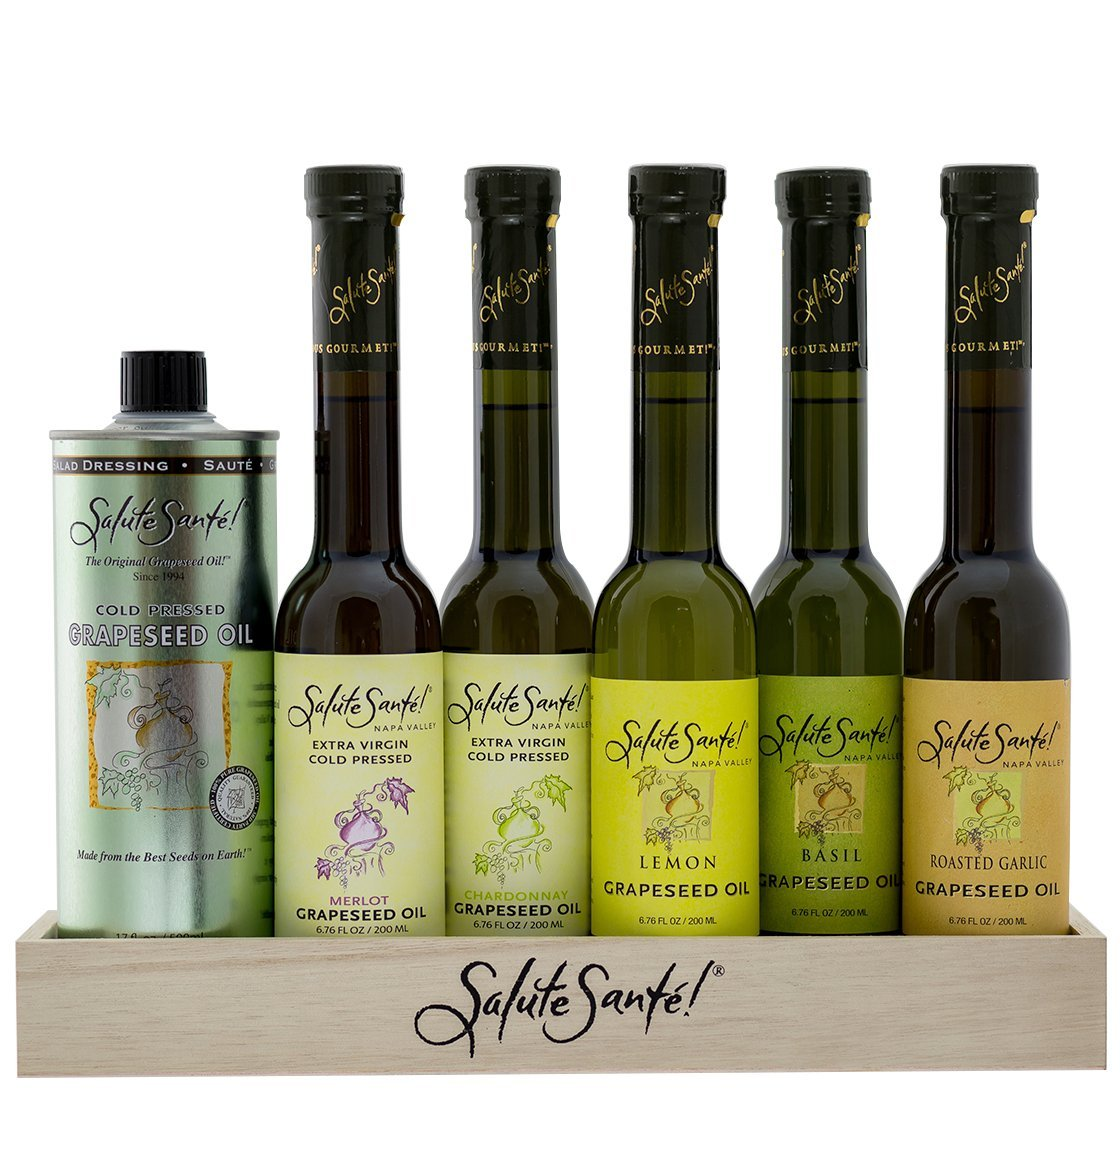 Salute Santé! Grapeseed Oil Pantry by Salute Sante!